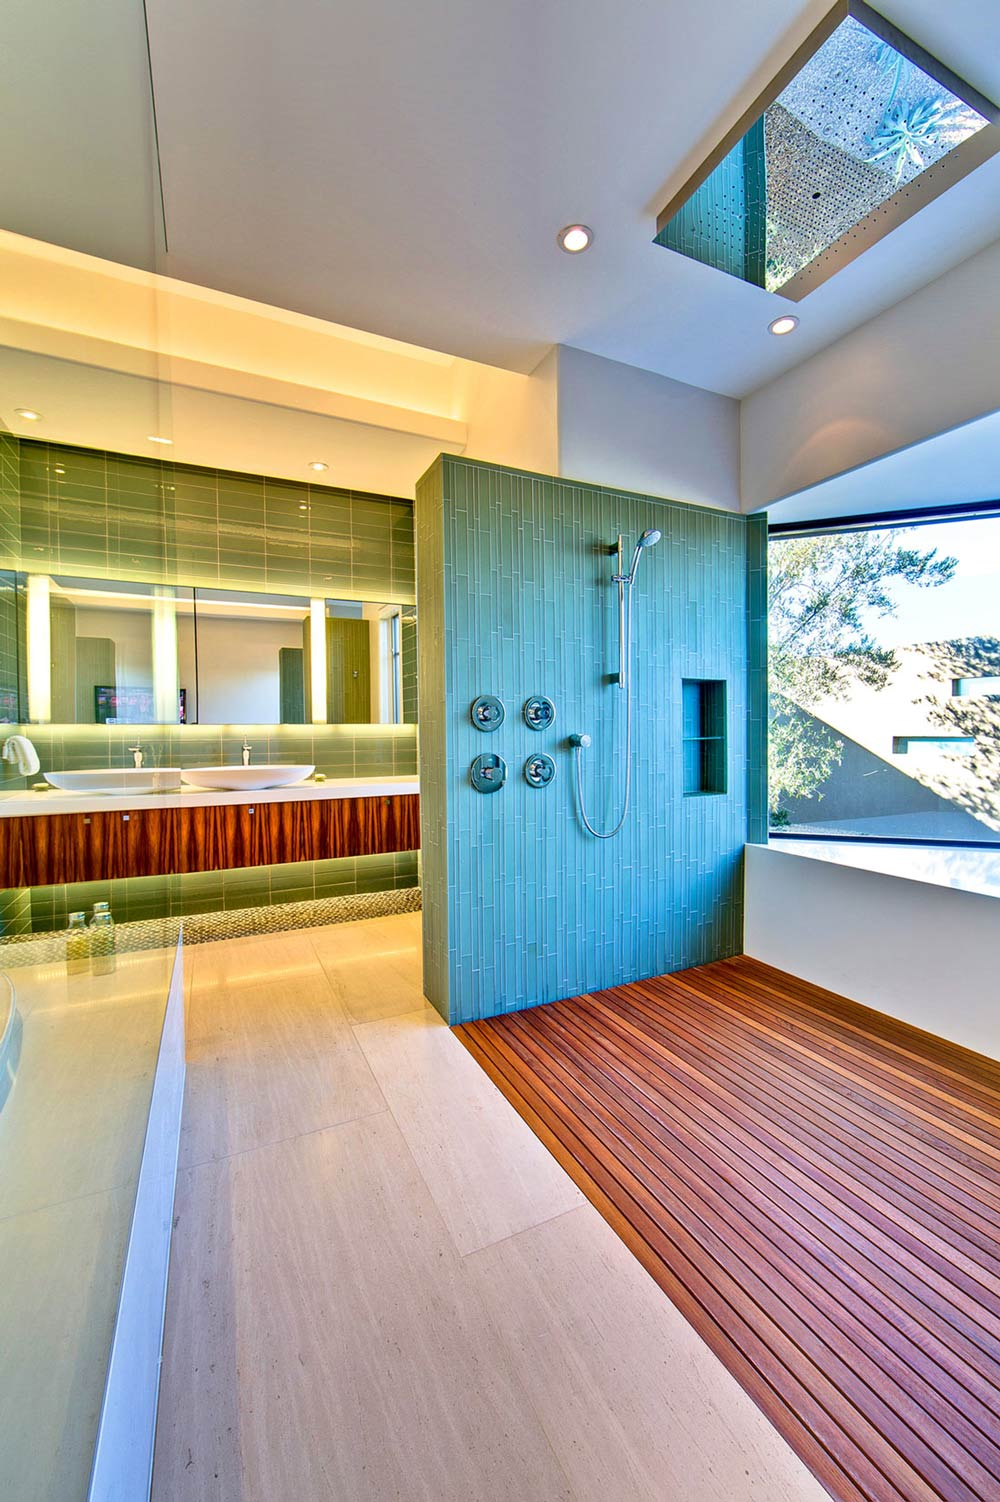 Shower, Wooden Floor, Ironwood Estate in Paradise Valley, Arizona by Kendle Design Collaborative